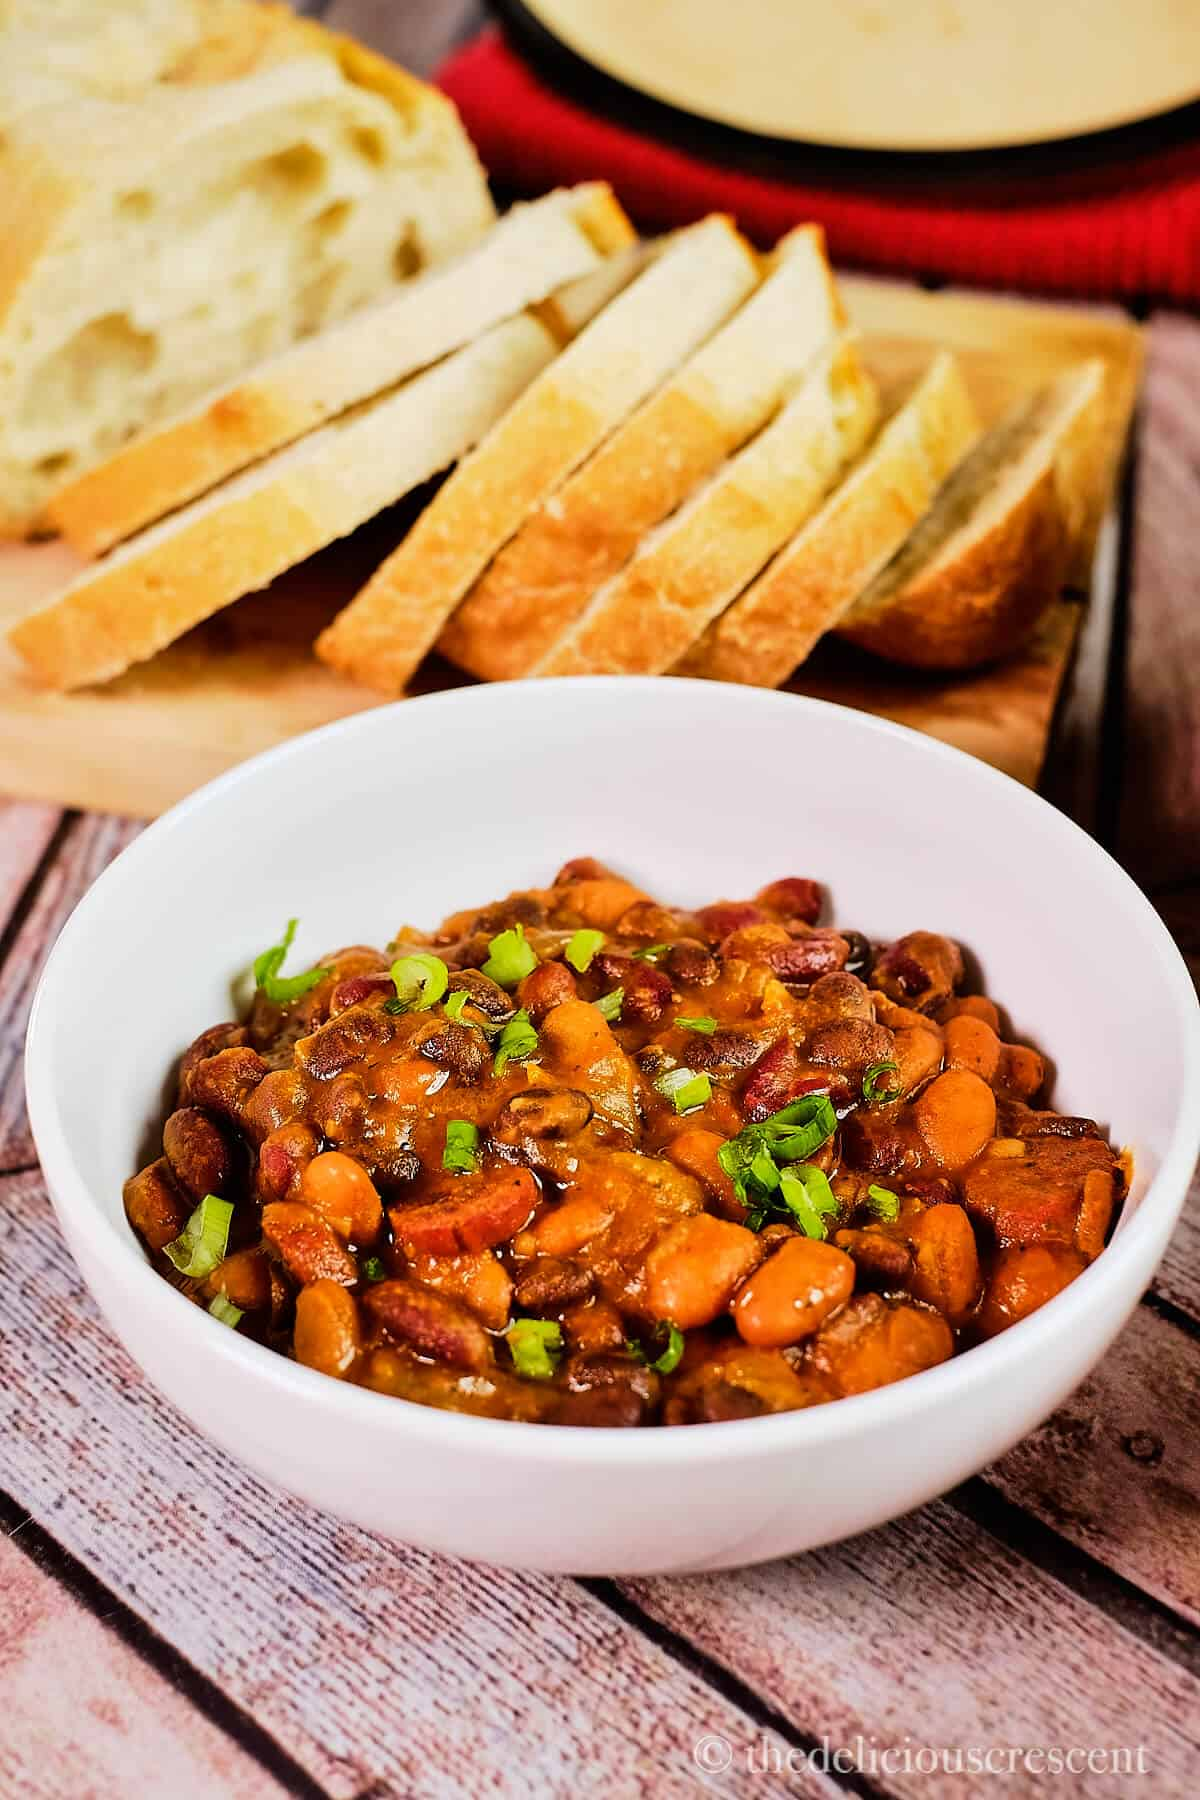 A bowl of bean and sausage stew served with bread.